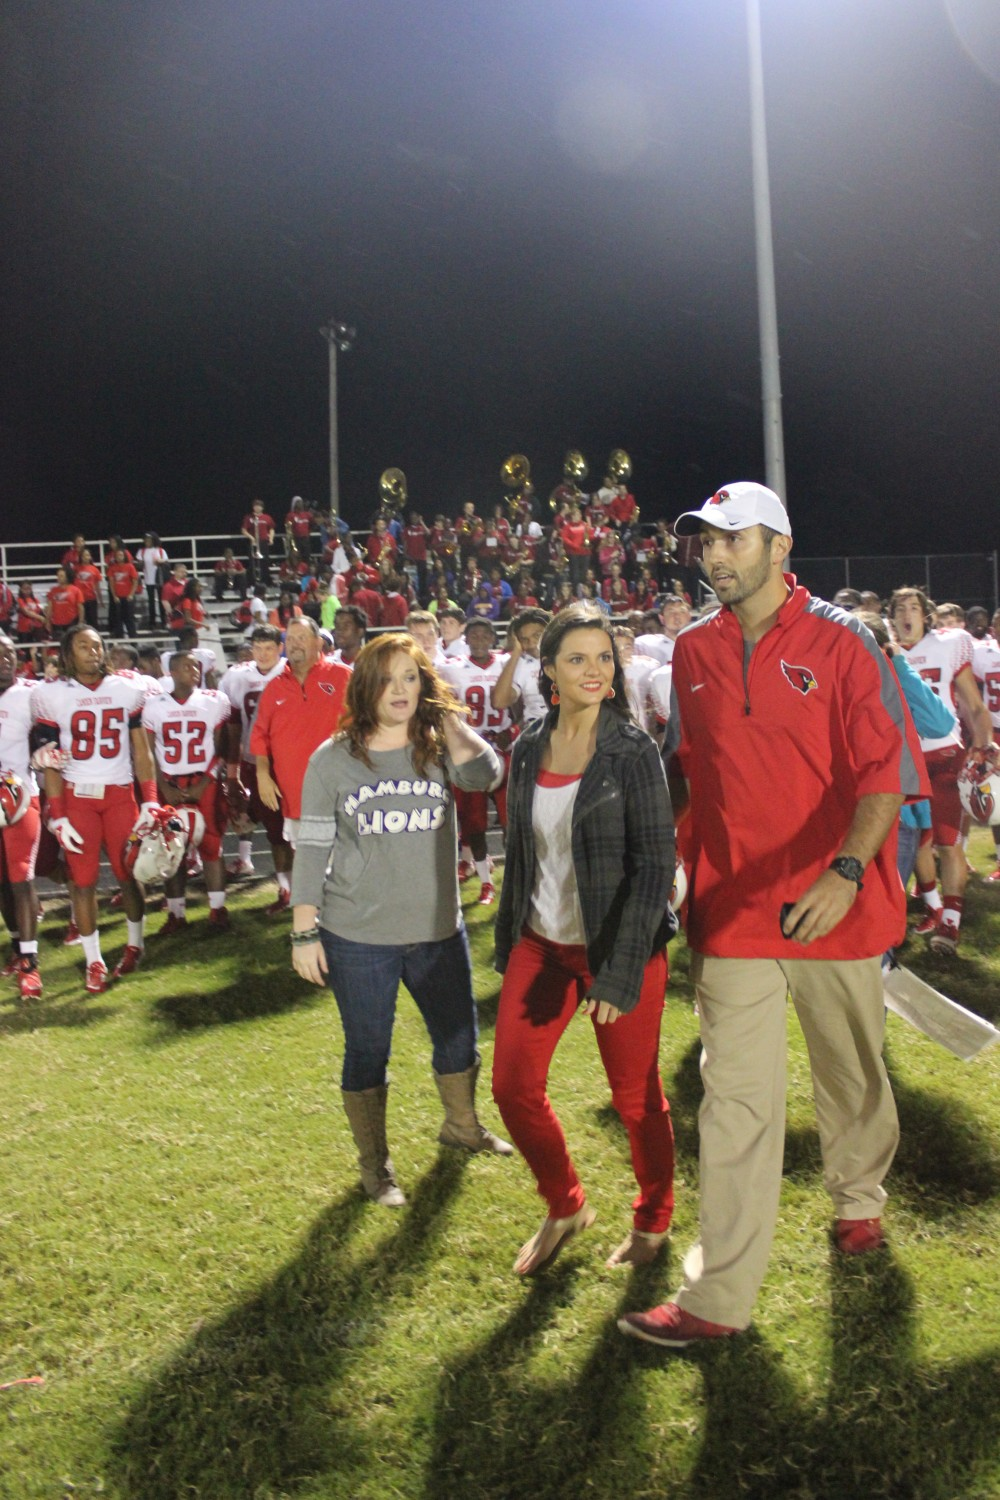 Image 1 of Hayley and Rob's Football Rival Proposal